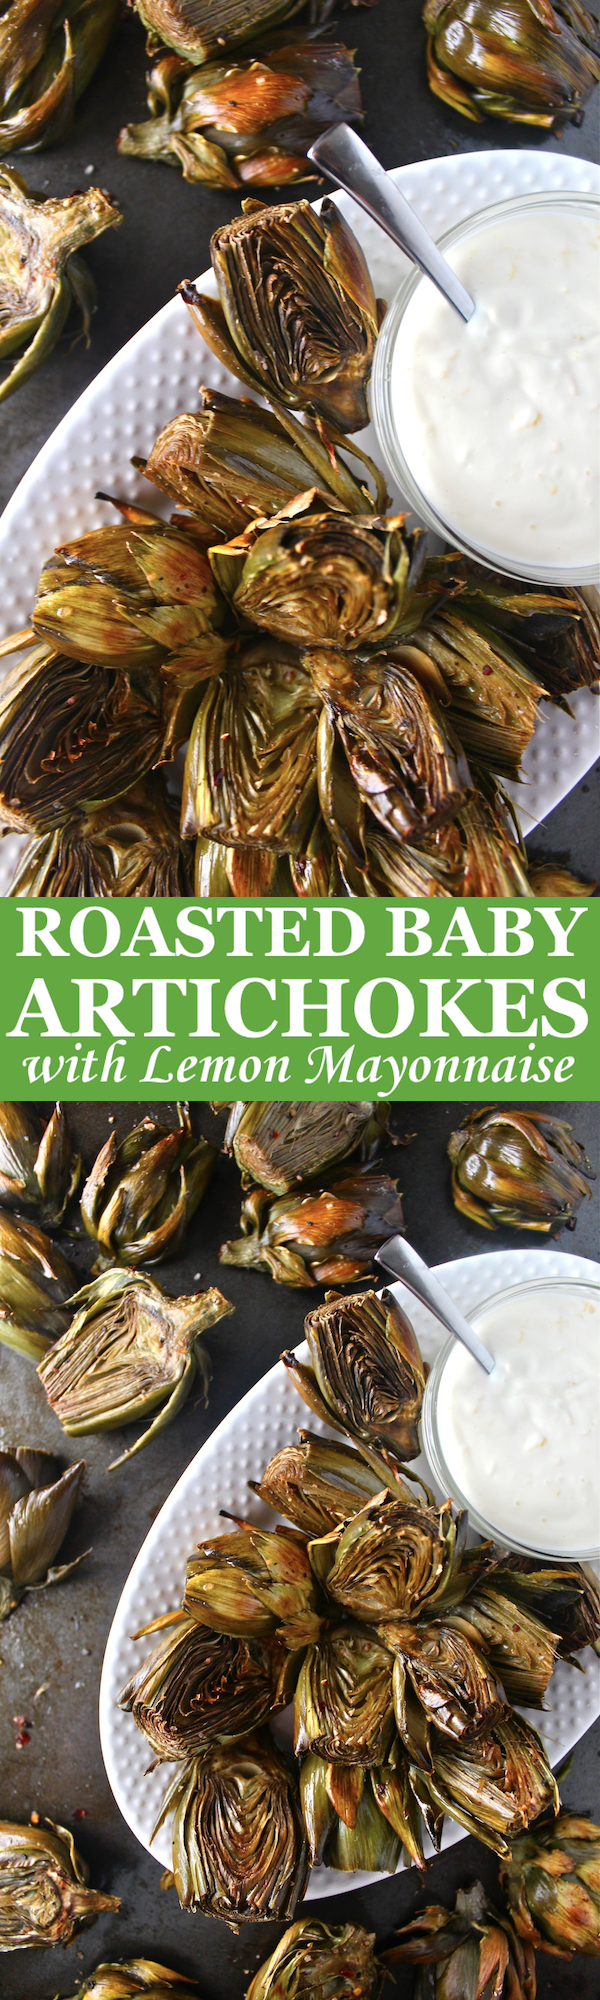 These Roasted Baby Artichokes with Lemon Mayonnaise are a delicious savory, tart, and creamy appetizer that's perfect for spring! | The Millennial Cook #springrecipe #appetizer #artichoke